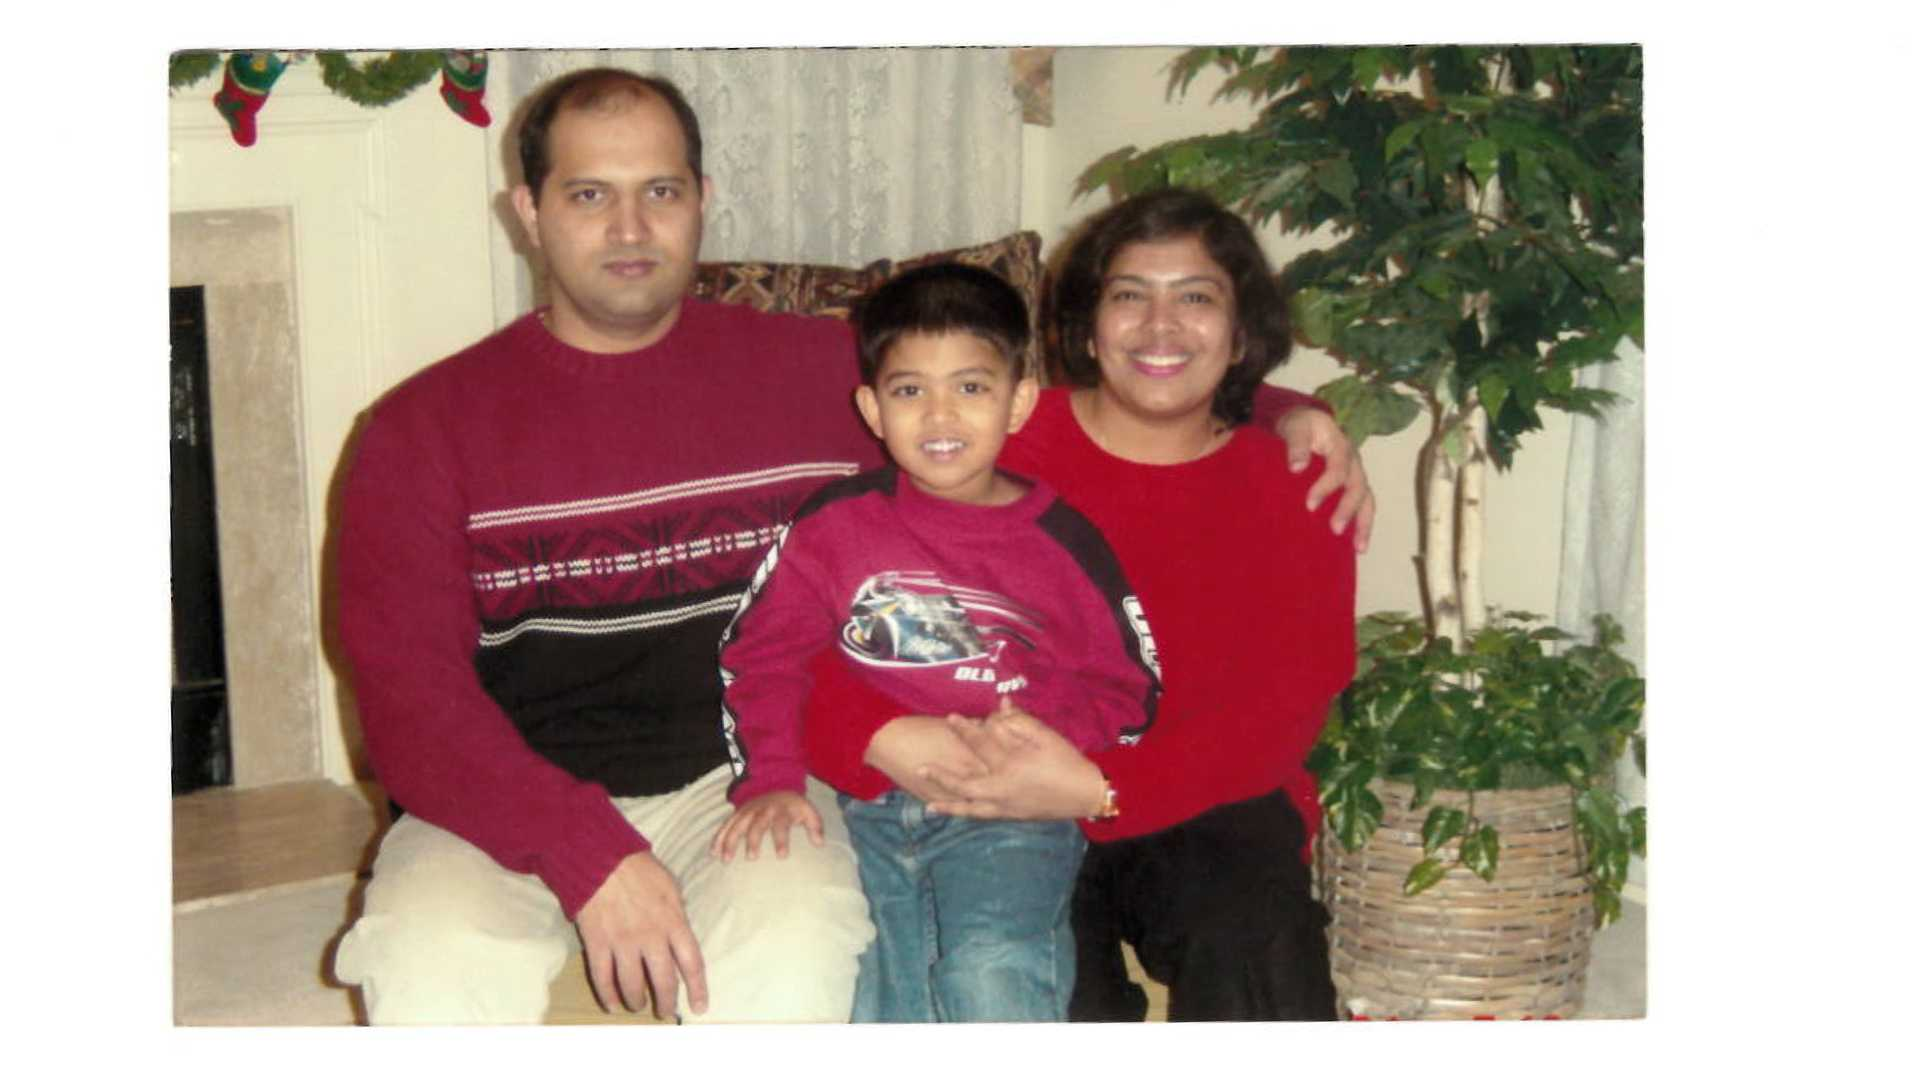 Aadit Tambe and his parents pose for a family photo in 2002. (Contributed)